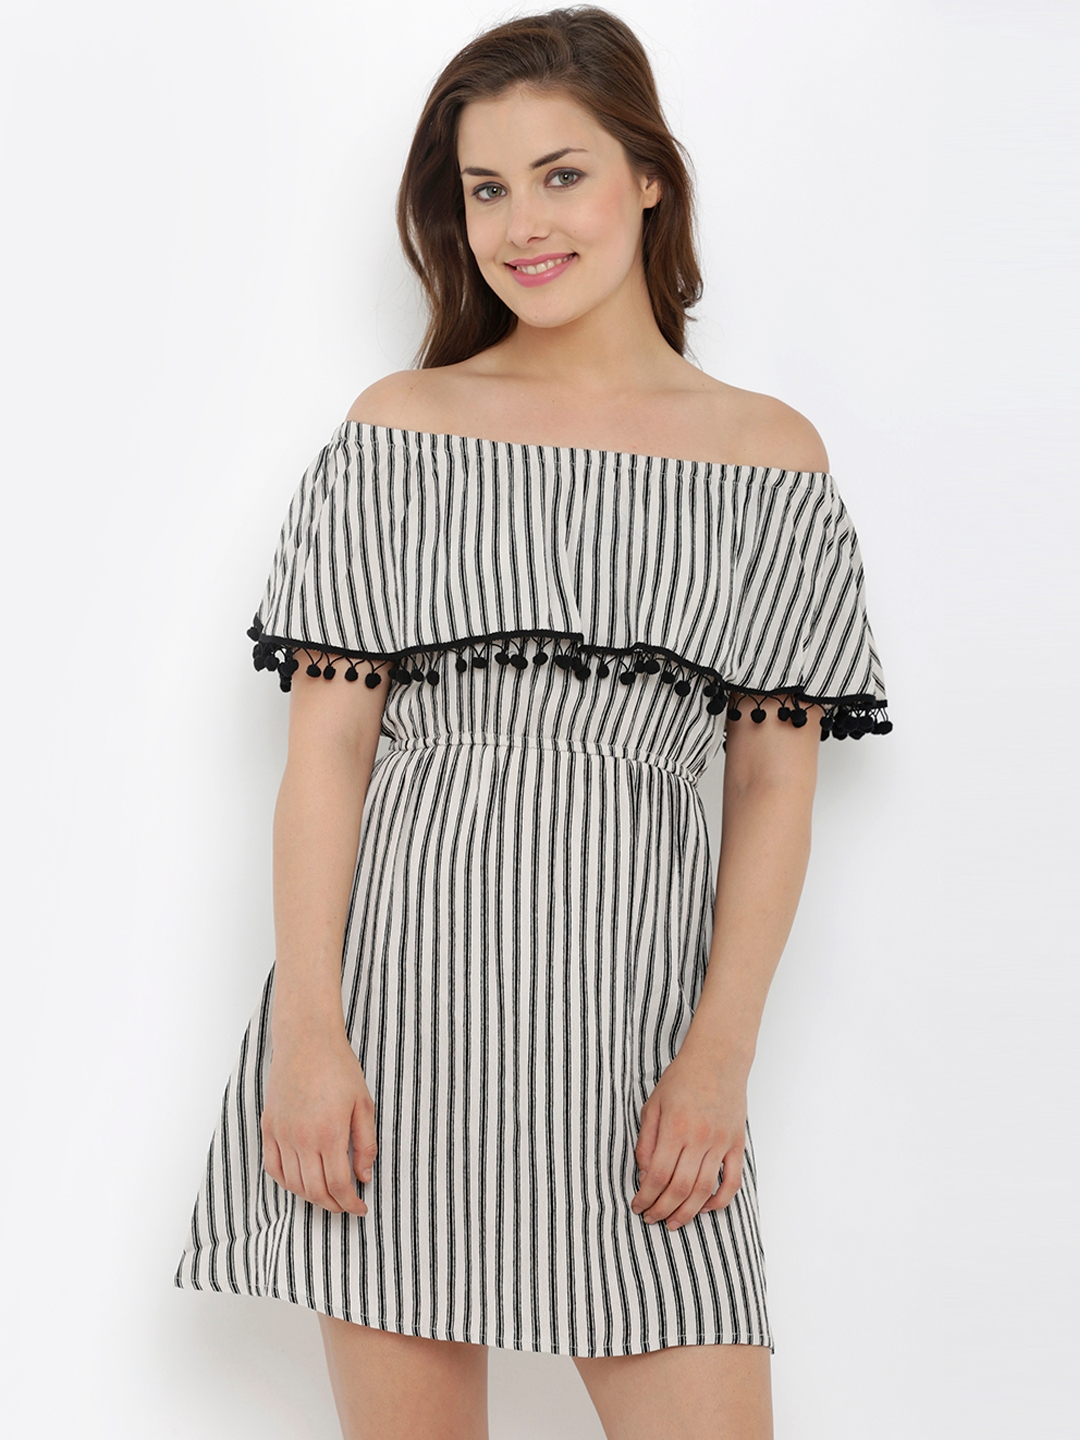 d6c4fbbb5326 Buy 20Dresses Women White   Black Striped Off Shoulder Fit   Flare ...